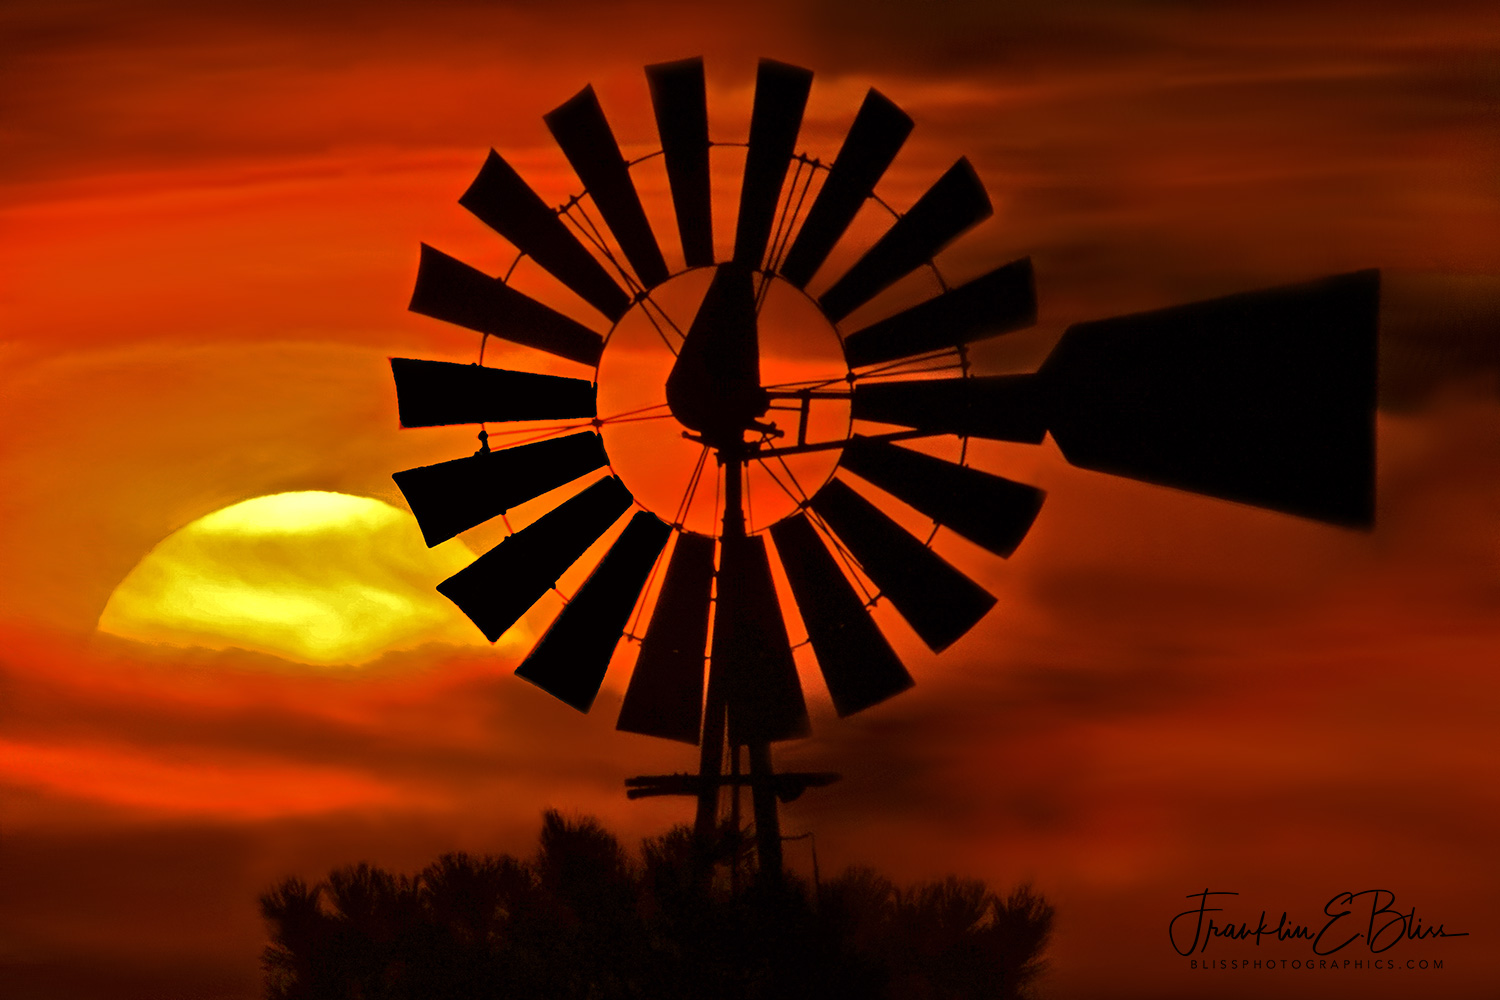 Sunset Seen Yet Again by This 100 Year Old Windmill